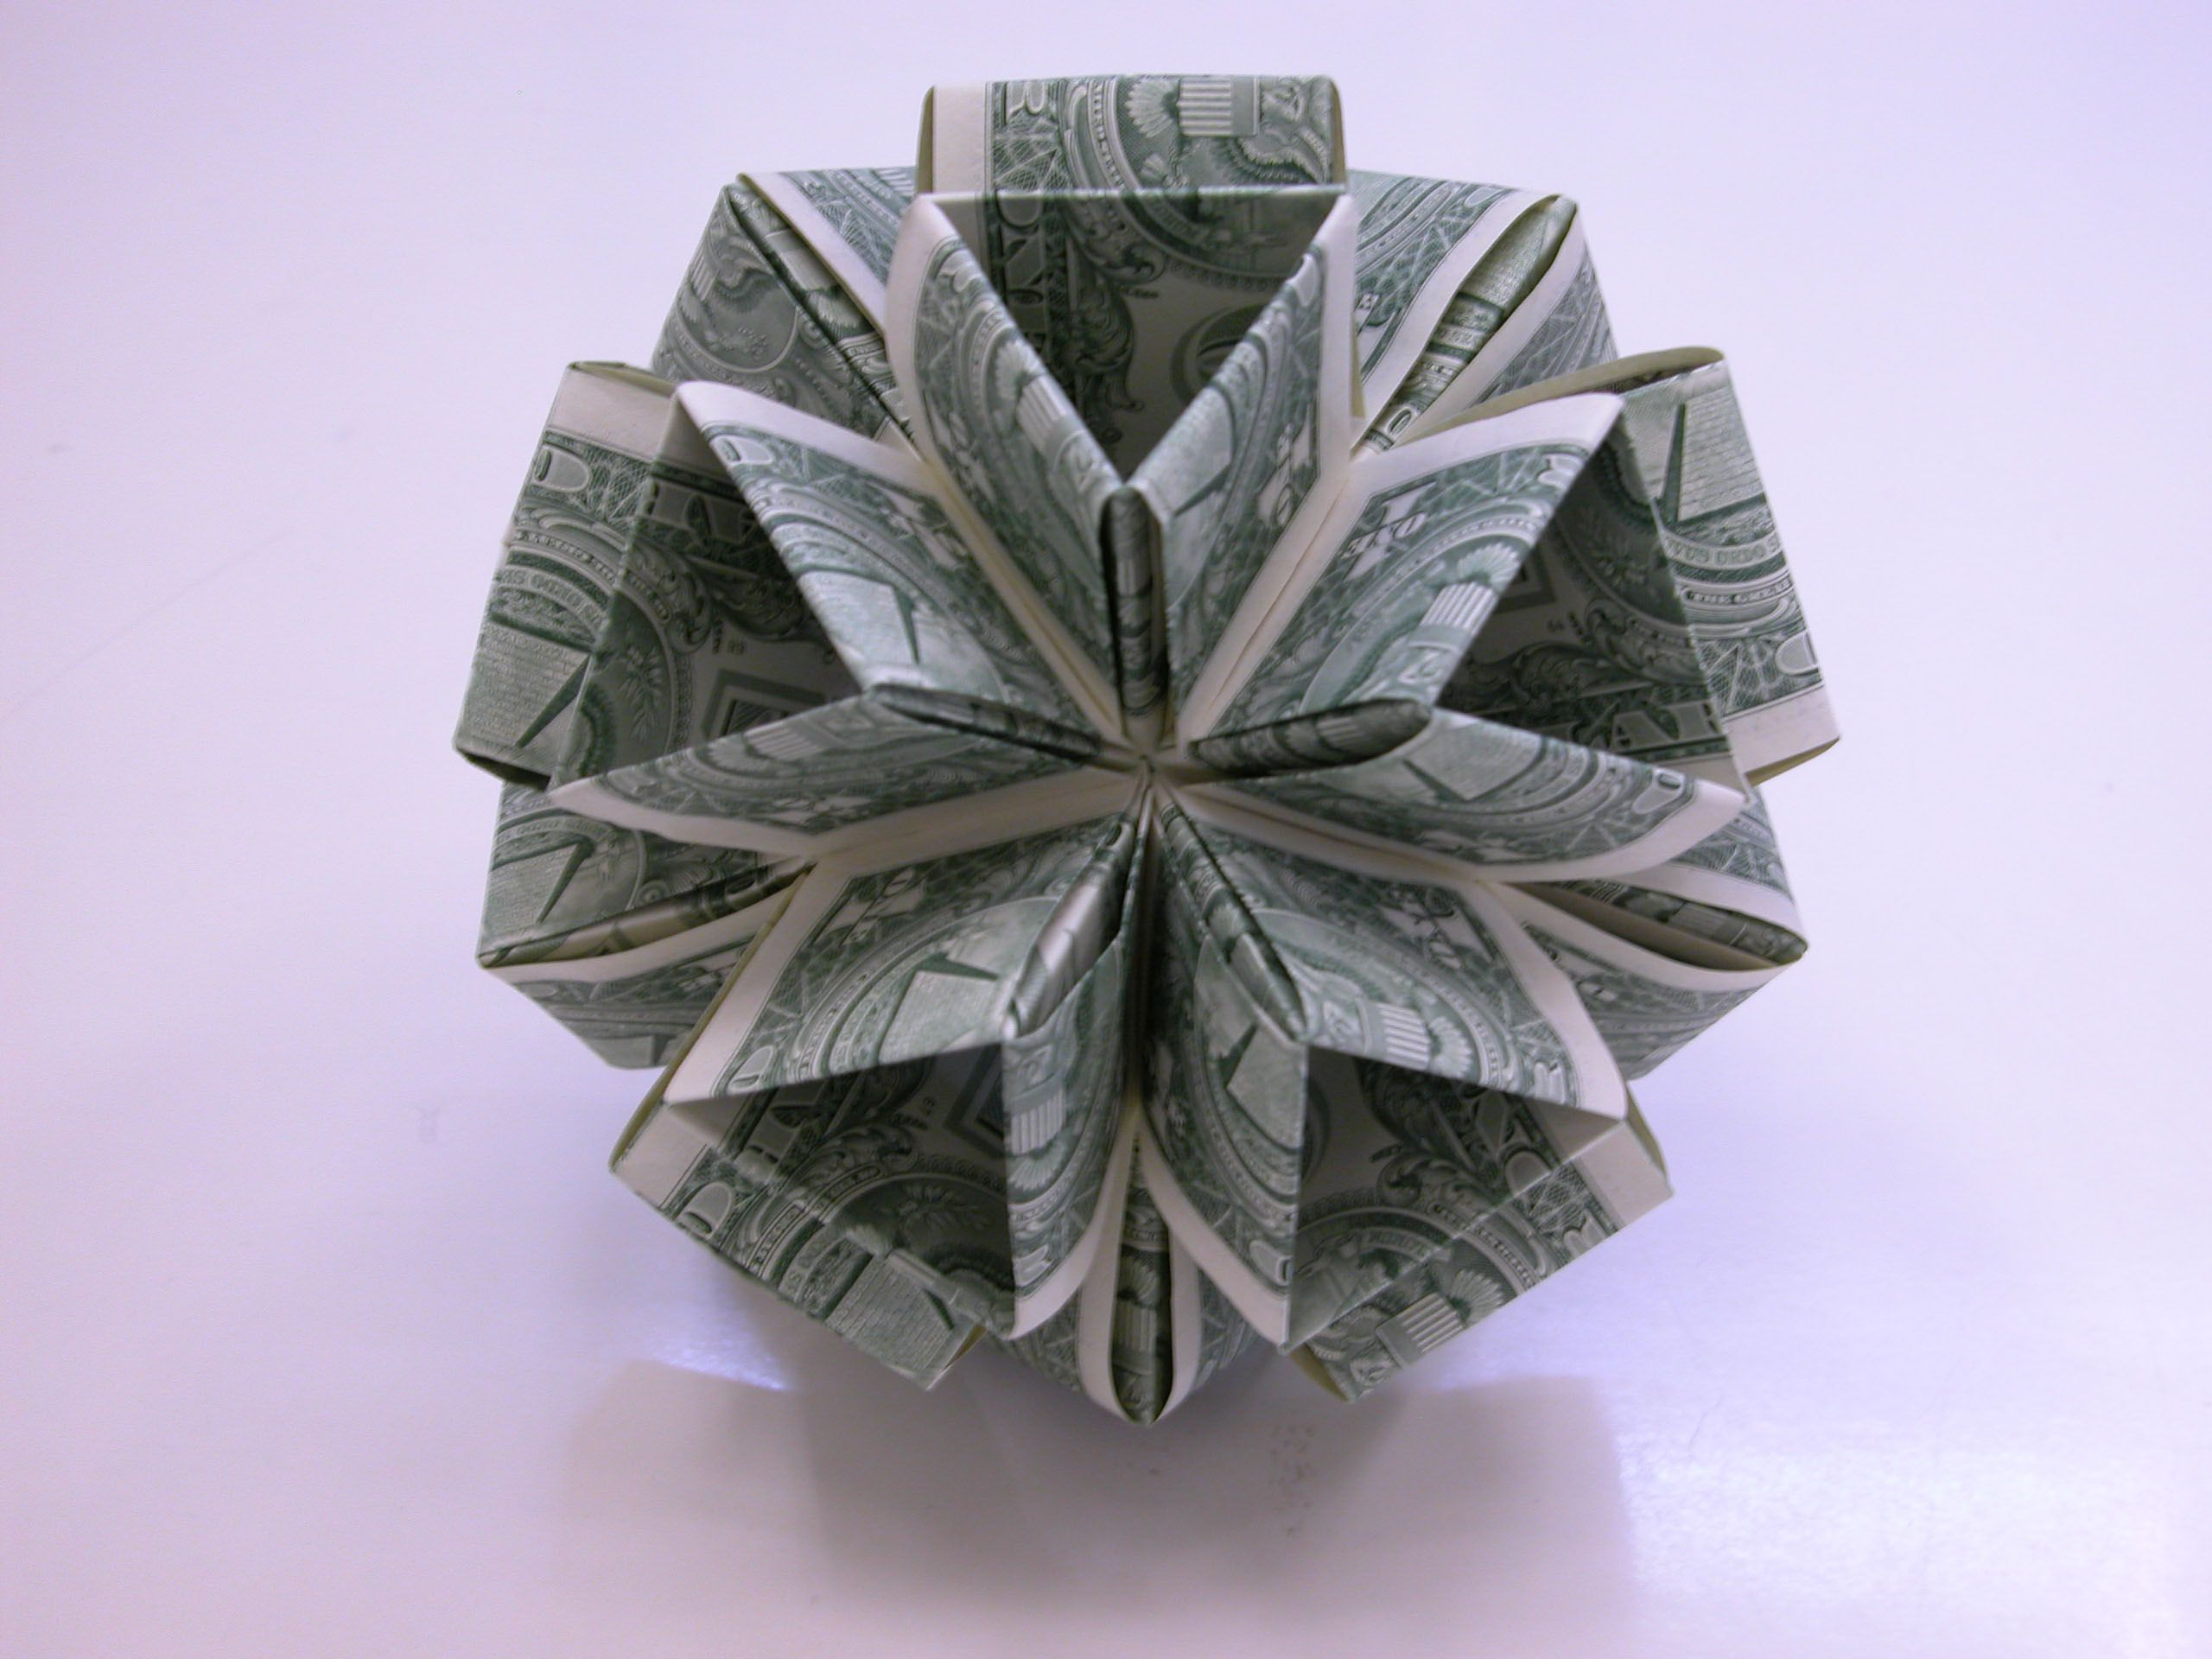 Dollar Money Origami Icosahedron | Money Dollar Origami ... - photo#19